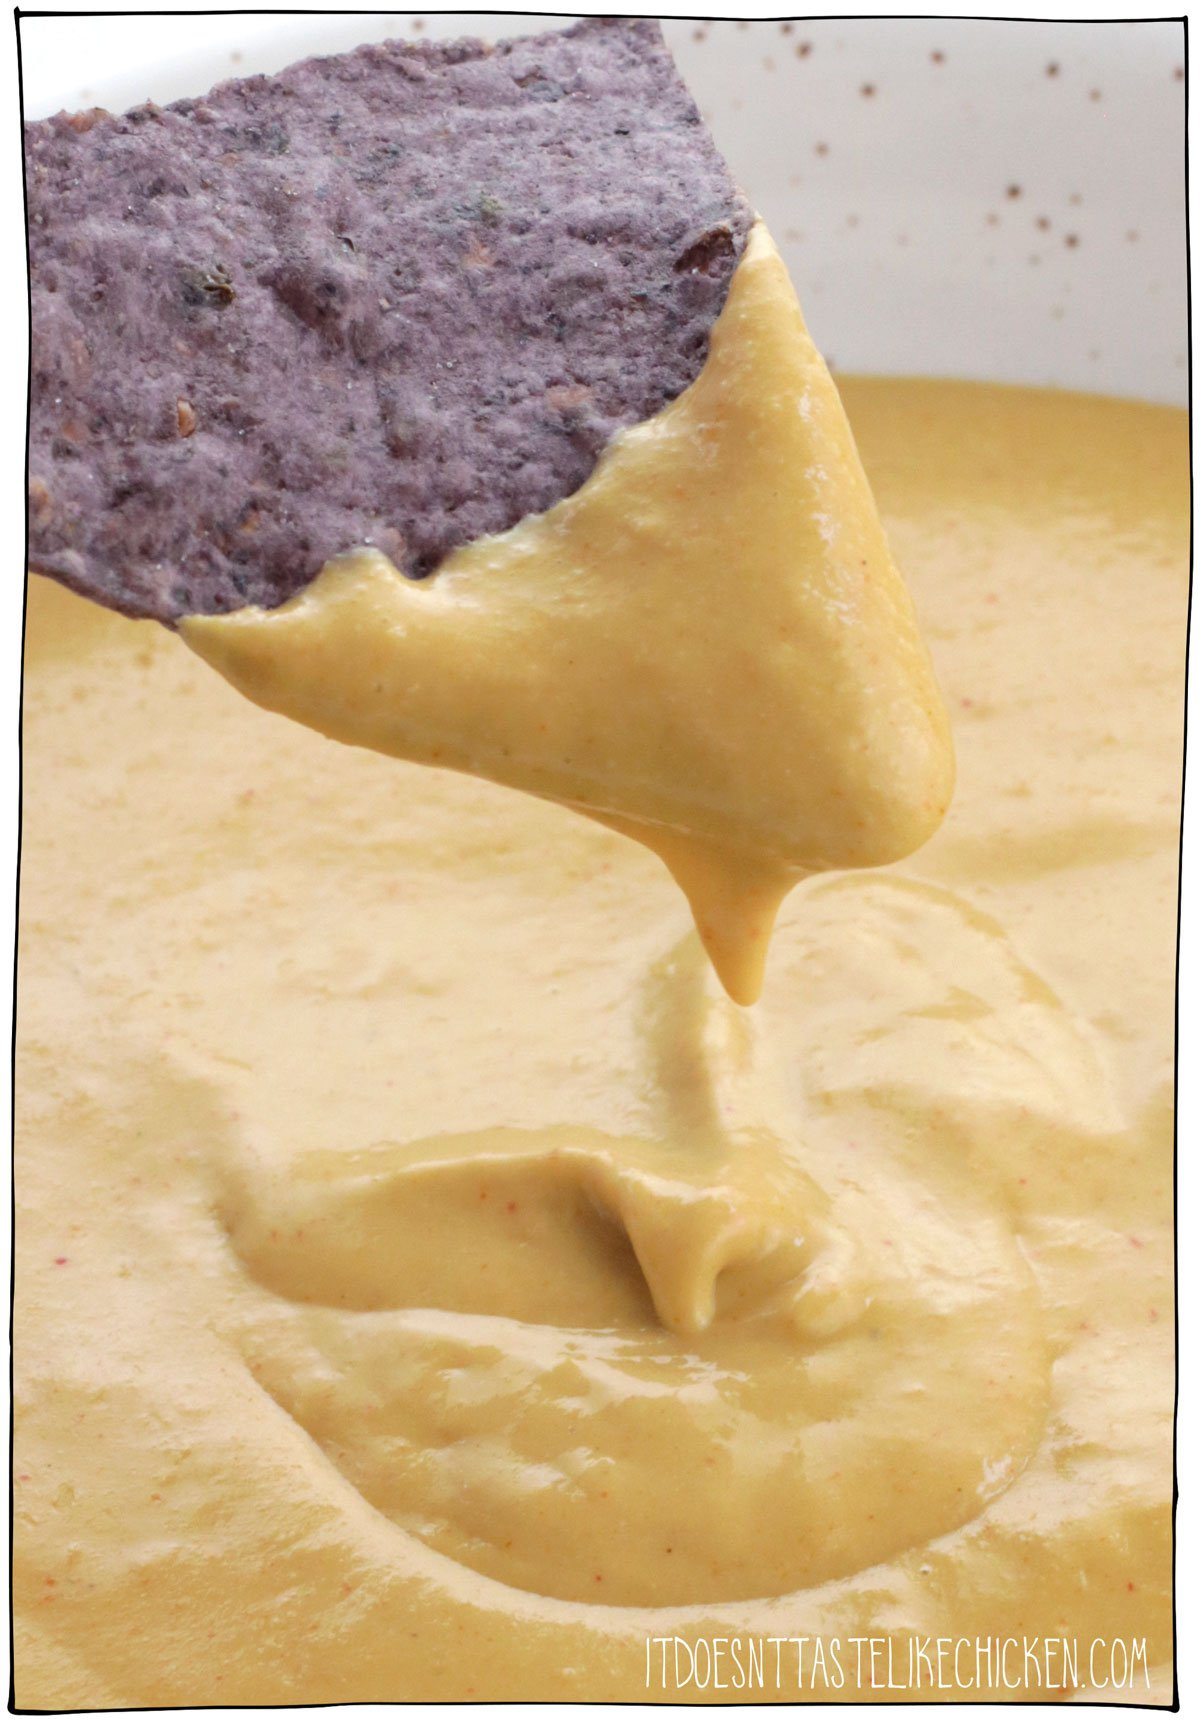 This easy vegan cheese sauce (no nuts) is the perfect vegan cheese recipe to drizzle on broccoli or a baked potato, to make nachos with, to use as a dip, to smother French fries for loaded cheesy fries (yes please!), or to enjoy with anything you like! This vegan cheese recipe is made with just 10 ingredients including raw sunflower seeds and a few other pantry staples, and when combined, they make the perfect creamy cheesy nut-free cheesy deliciousness. #itdoesnttastelikechicken #vegancheese